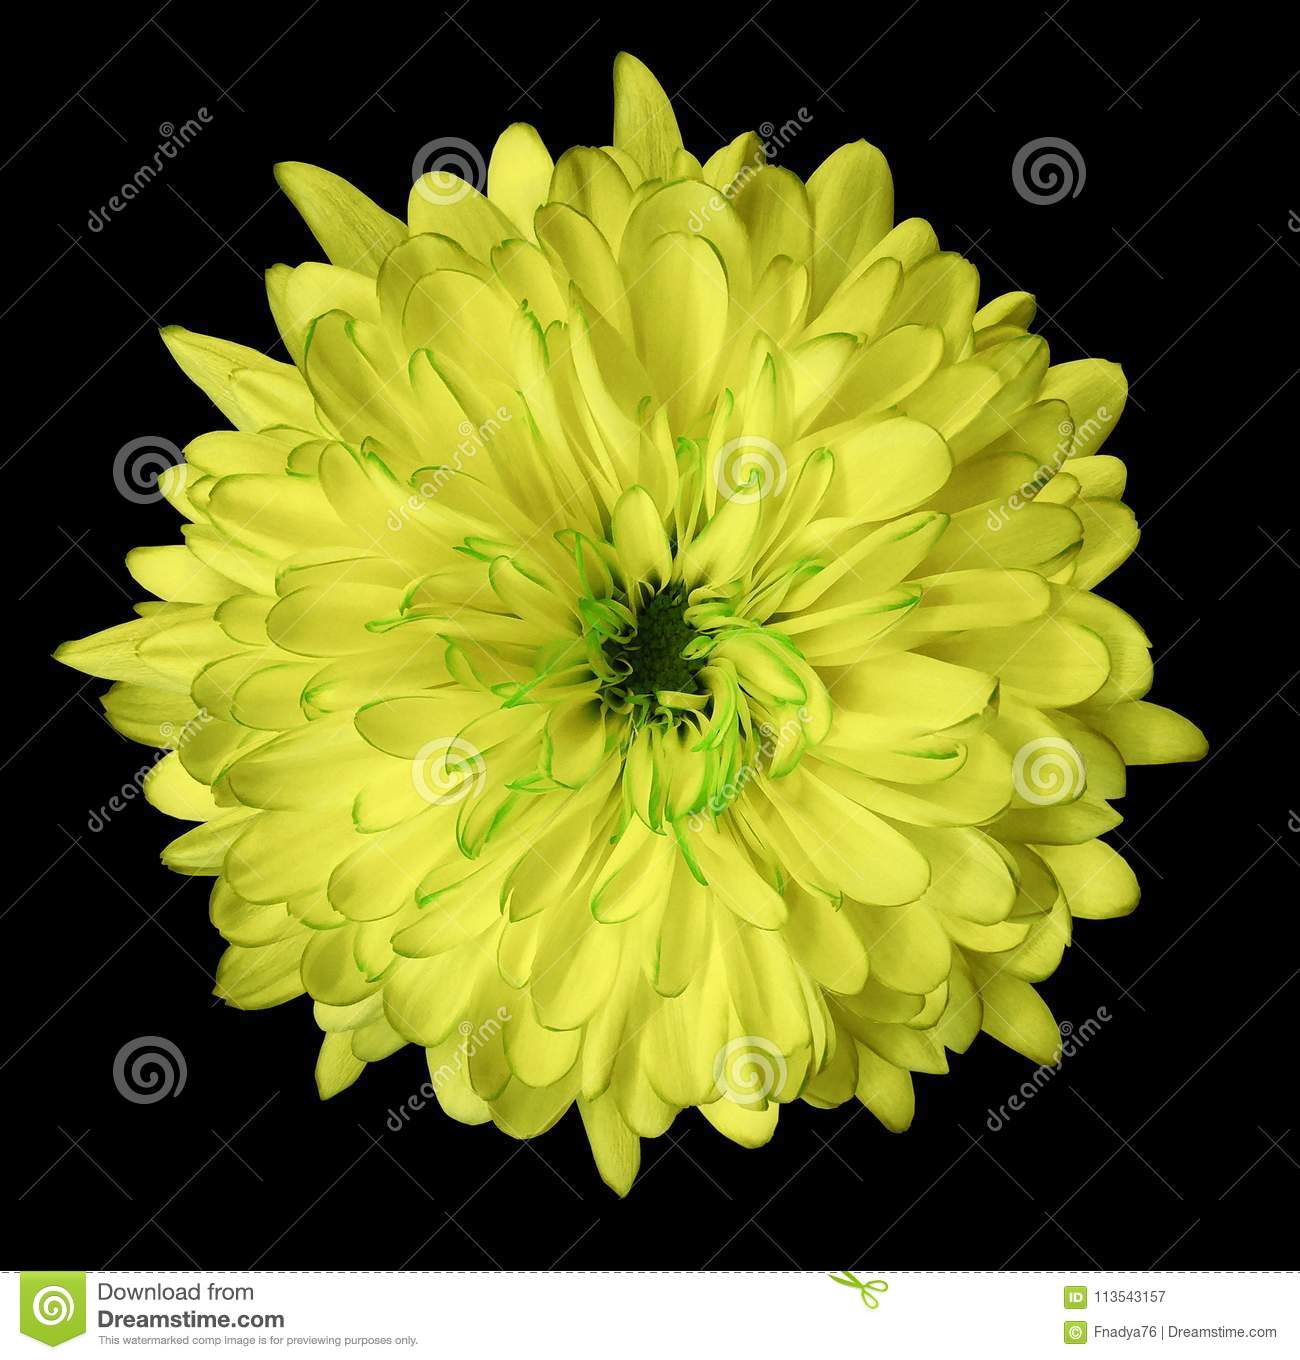 Yellow flower chrysanthemum garden flower black isolated yellow flower chrysanthemum garden flower black isolated background with clipping path closeup no shadows green centre nature mightylinksfo